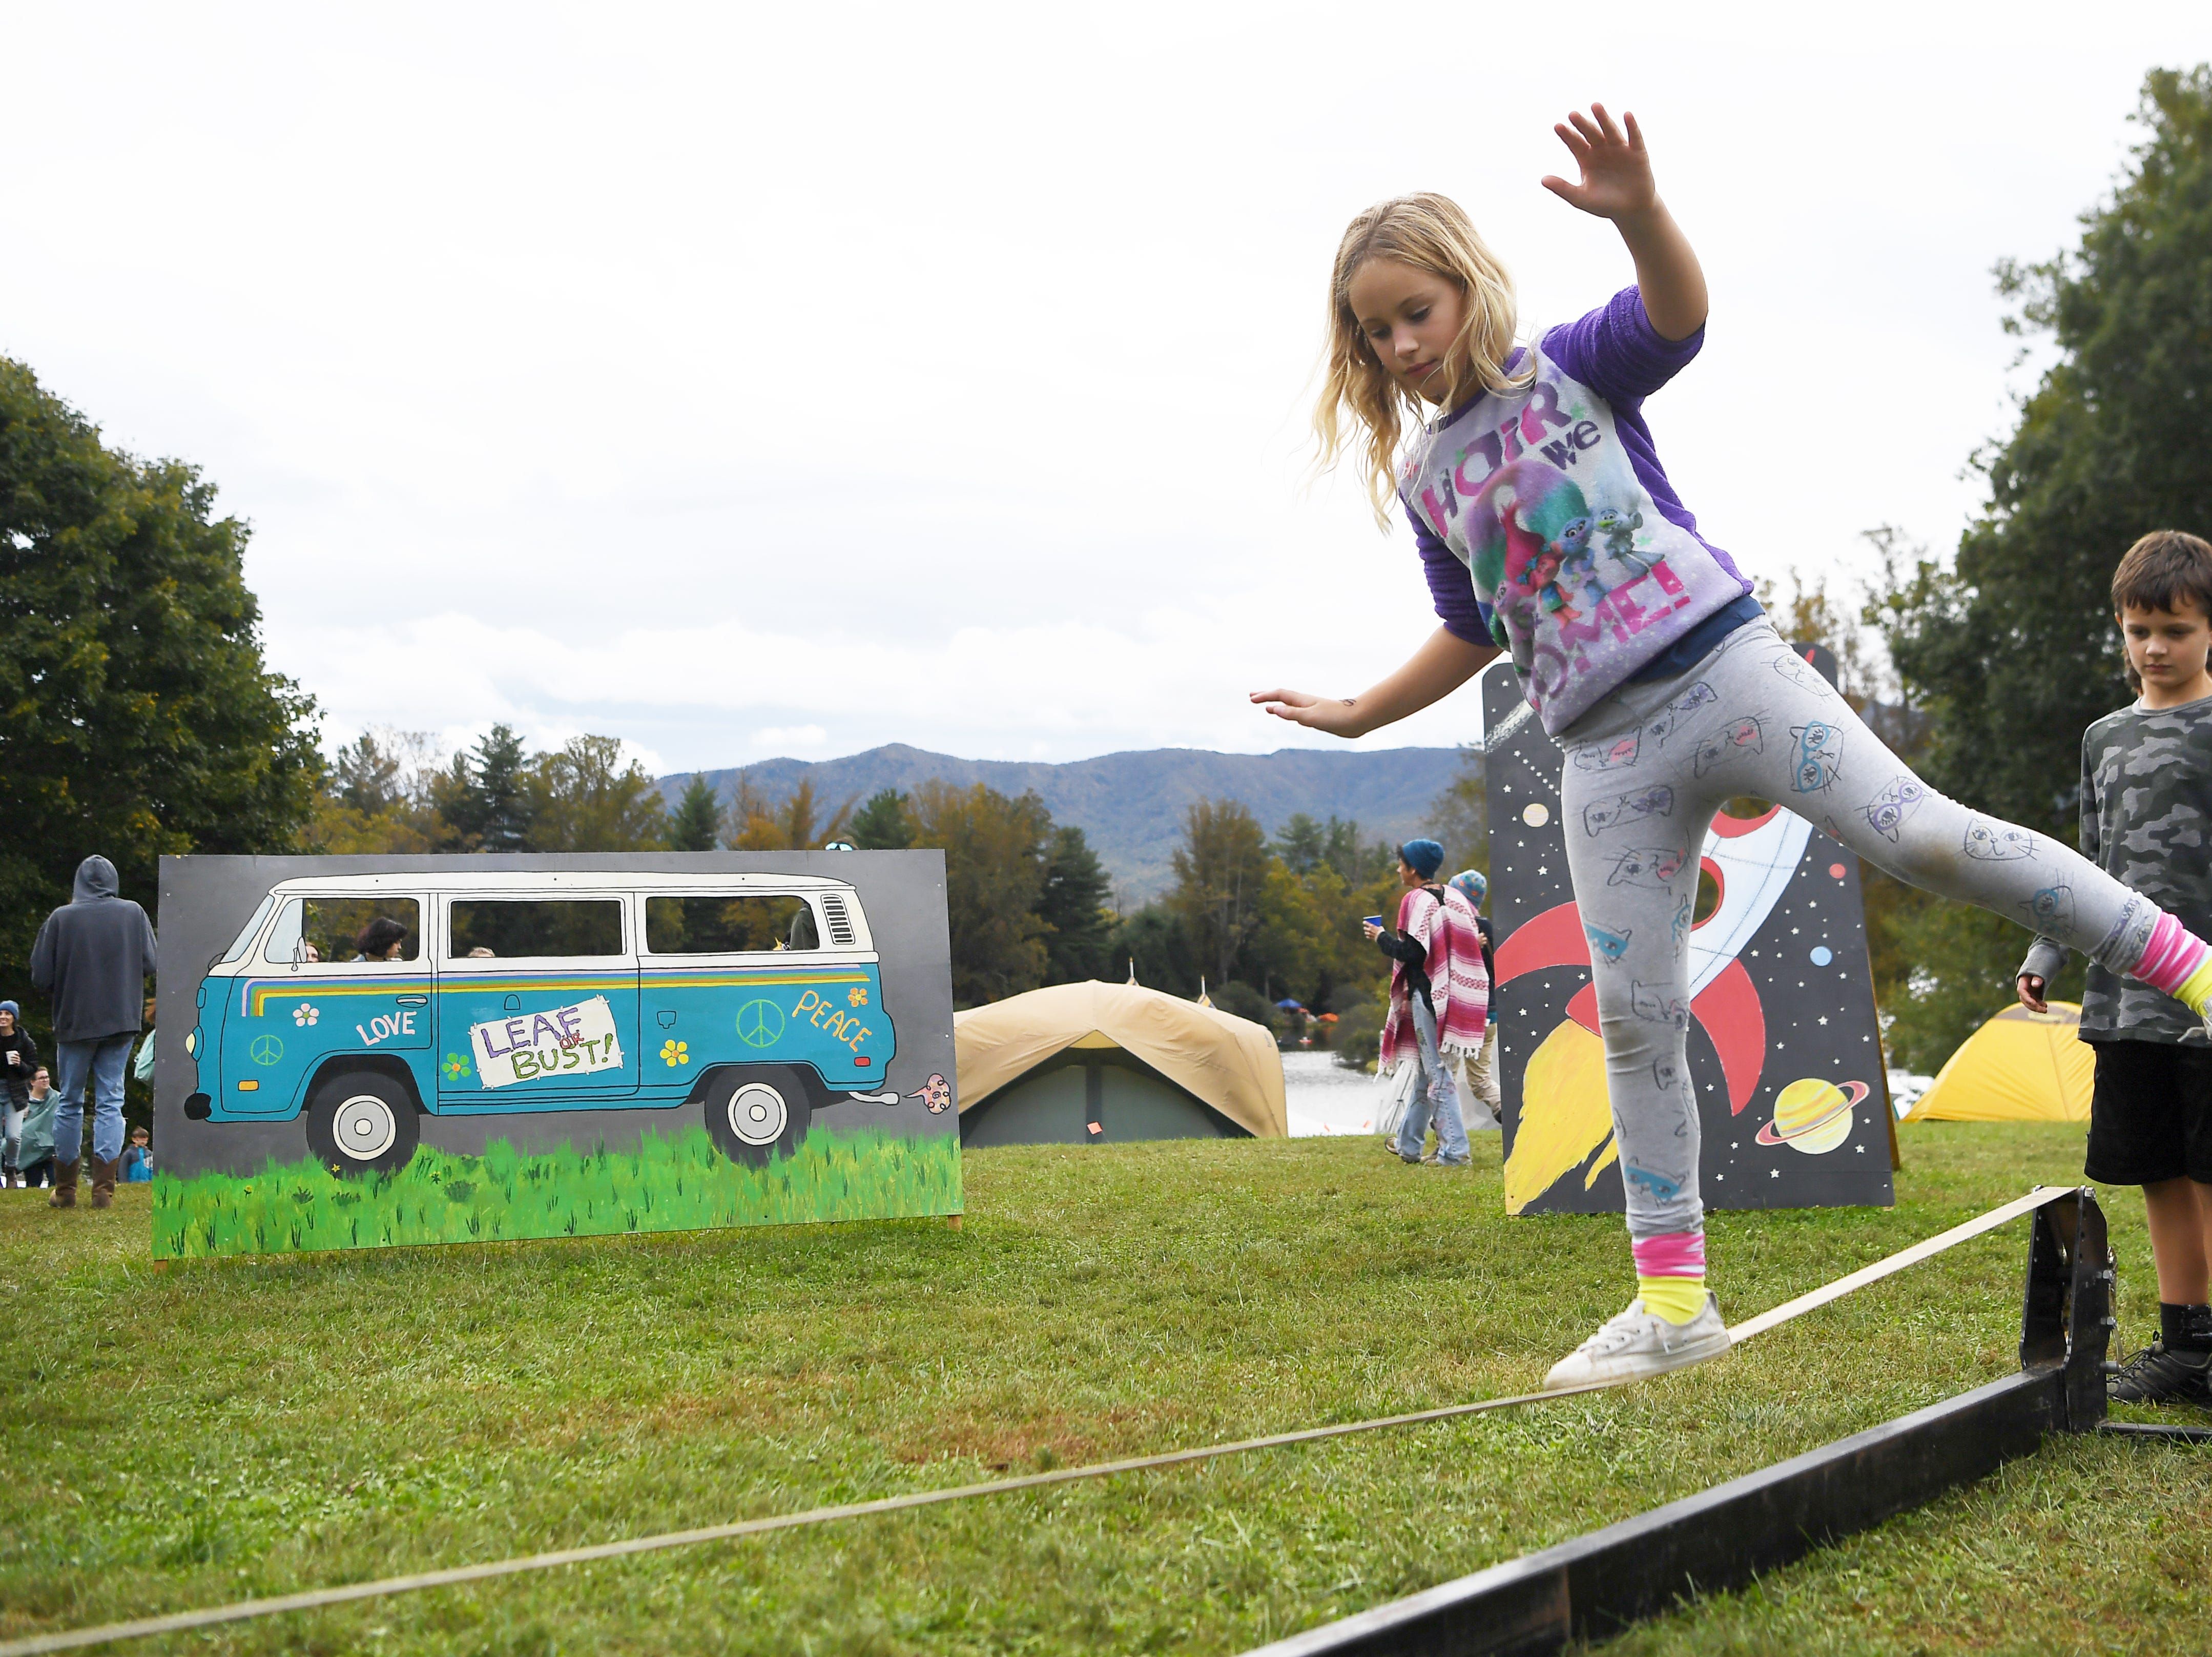 Miriam Creech, 9, tests her balance on a slack line at the 47th LEAF Festival at Lake Eden in Black Mountain Oct. 20, 2018.